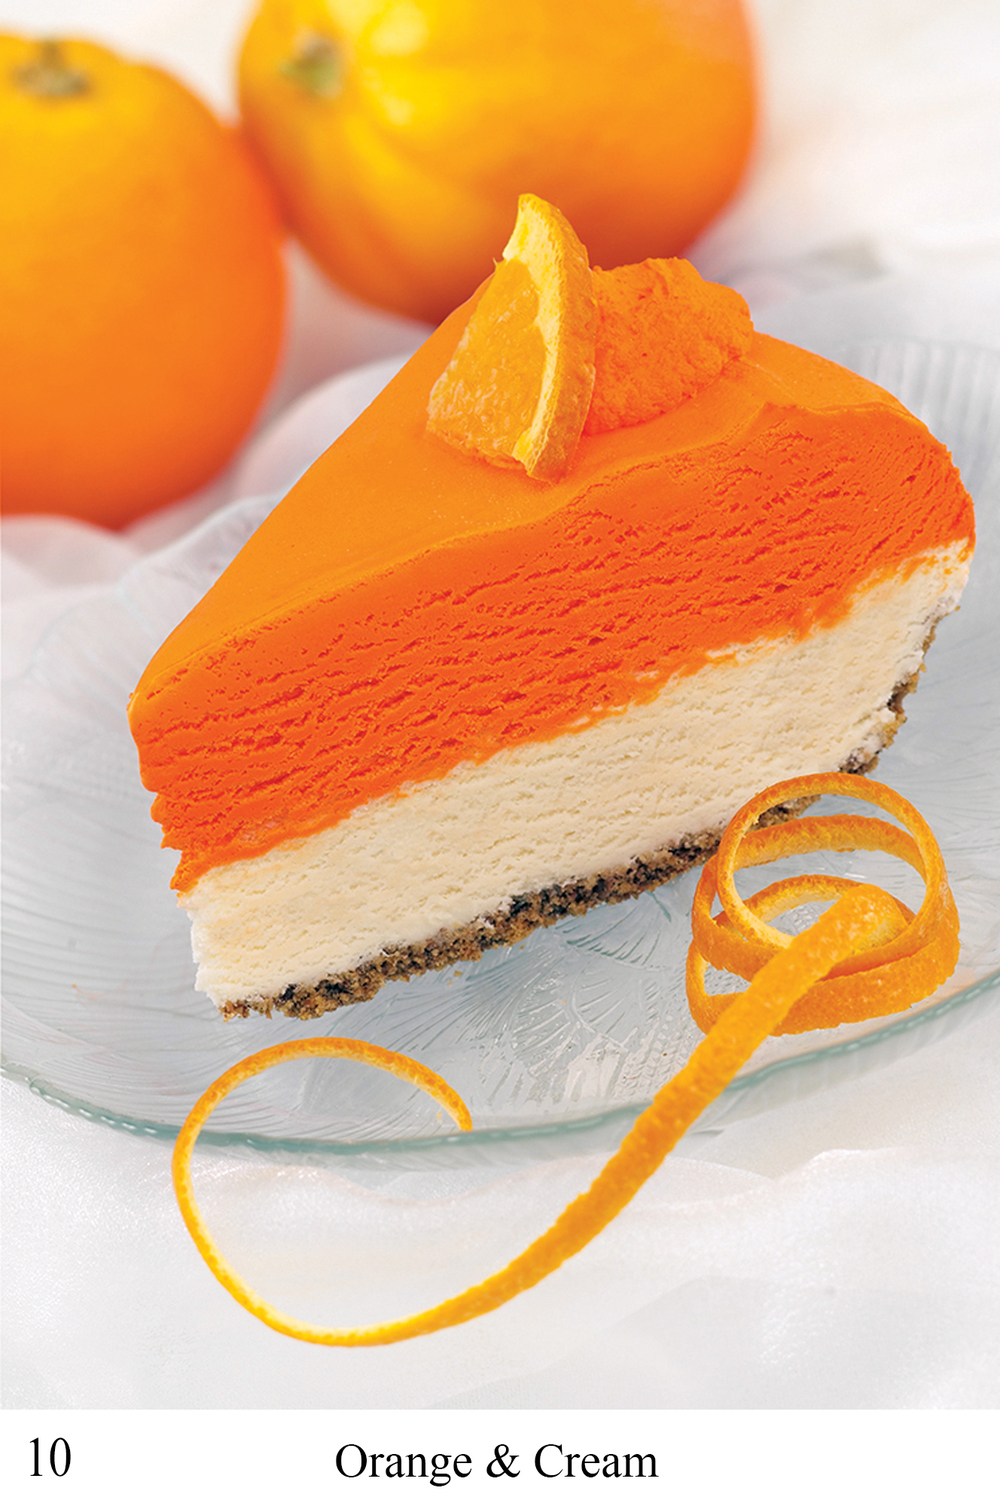 10Orange and Cream.jpg